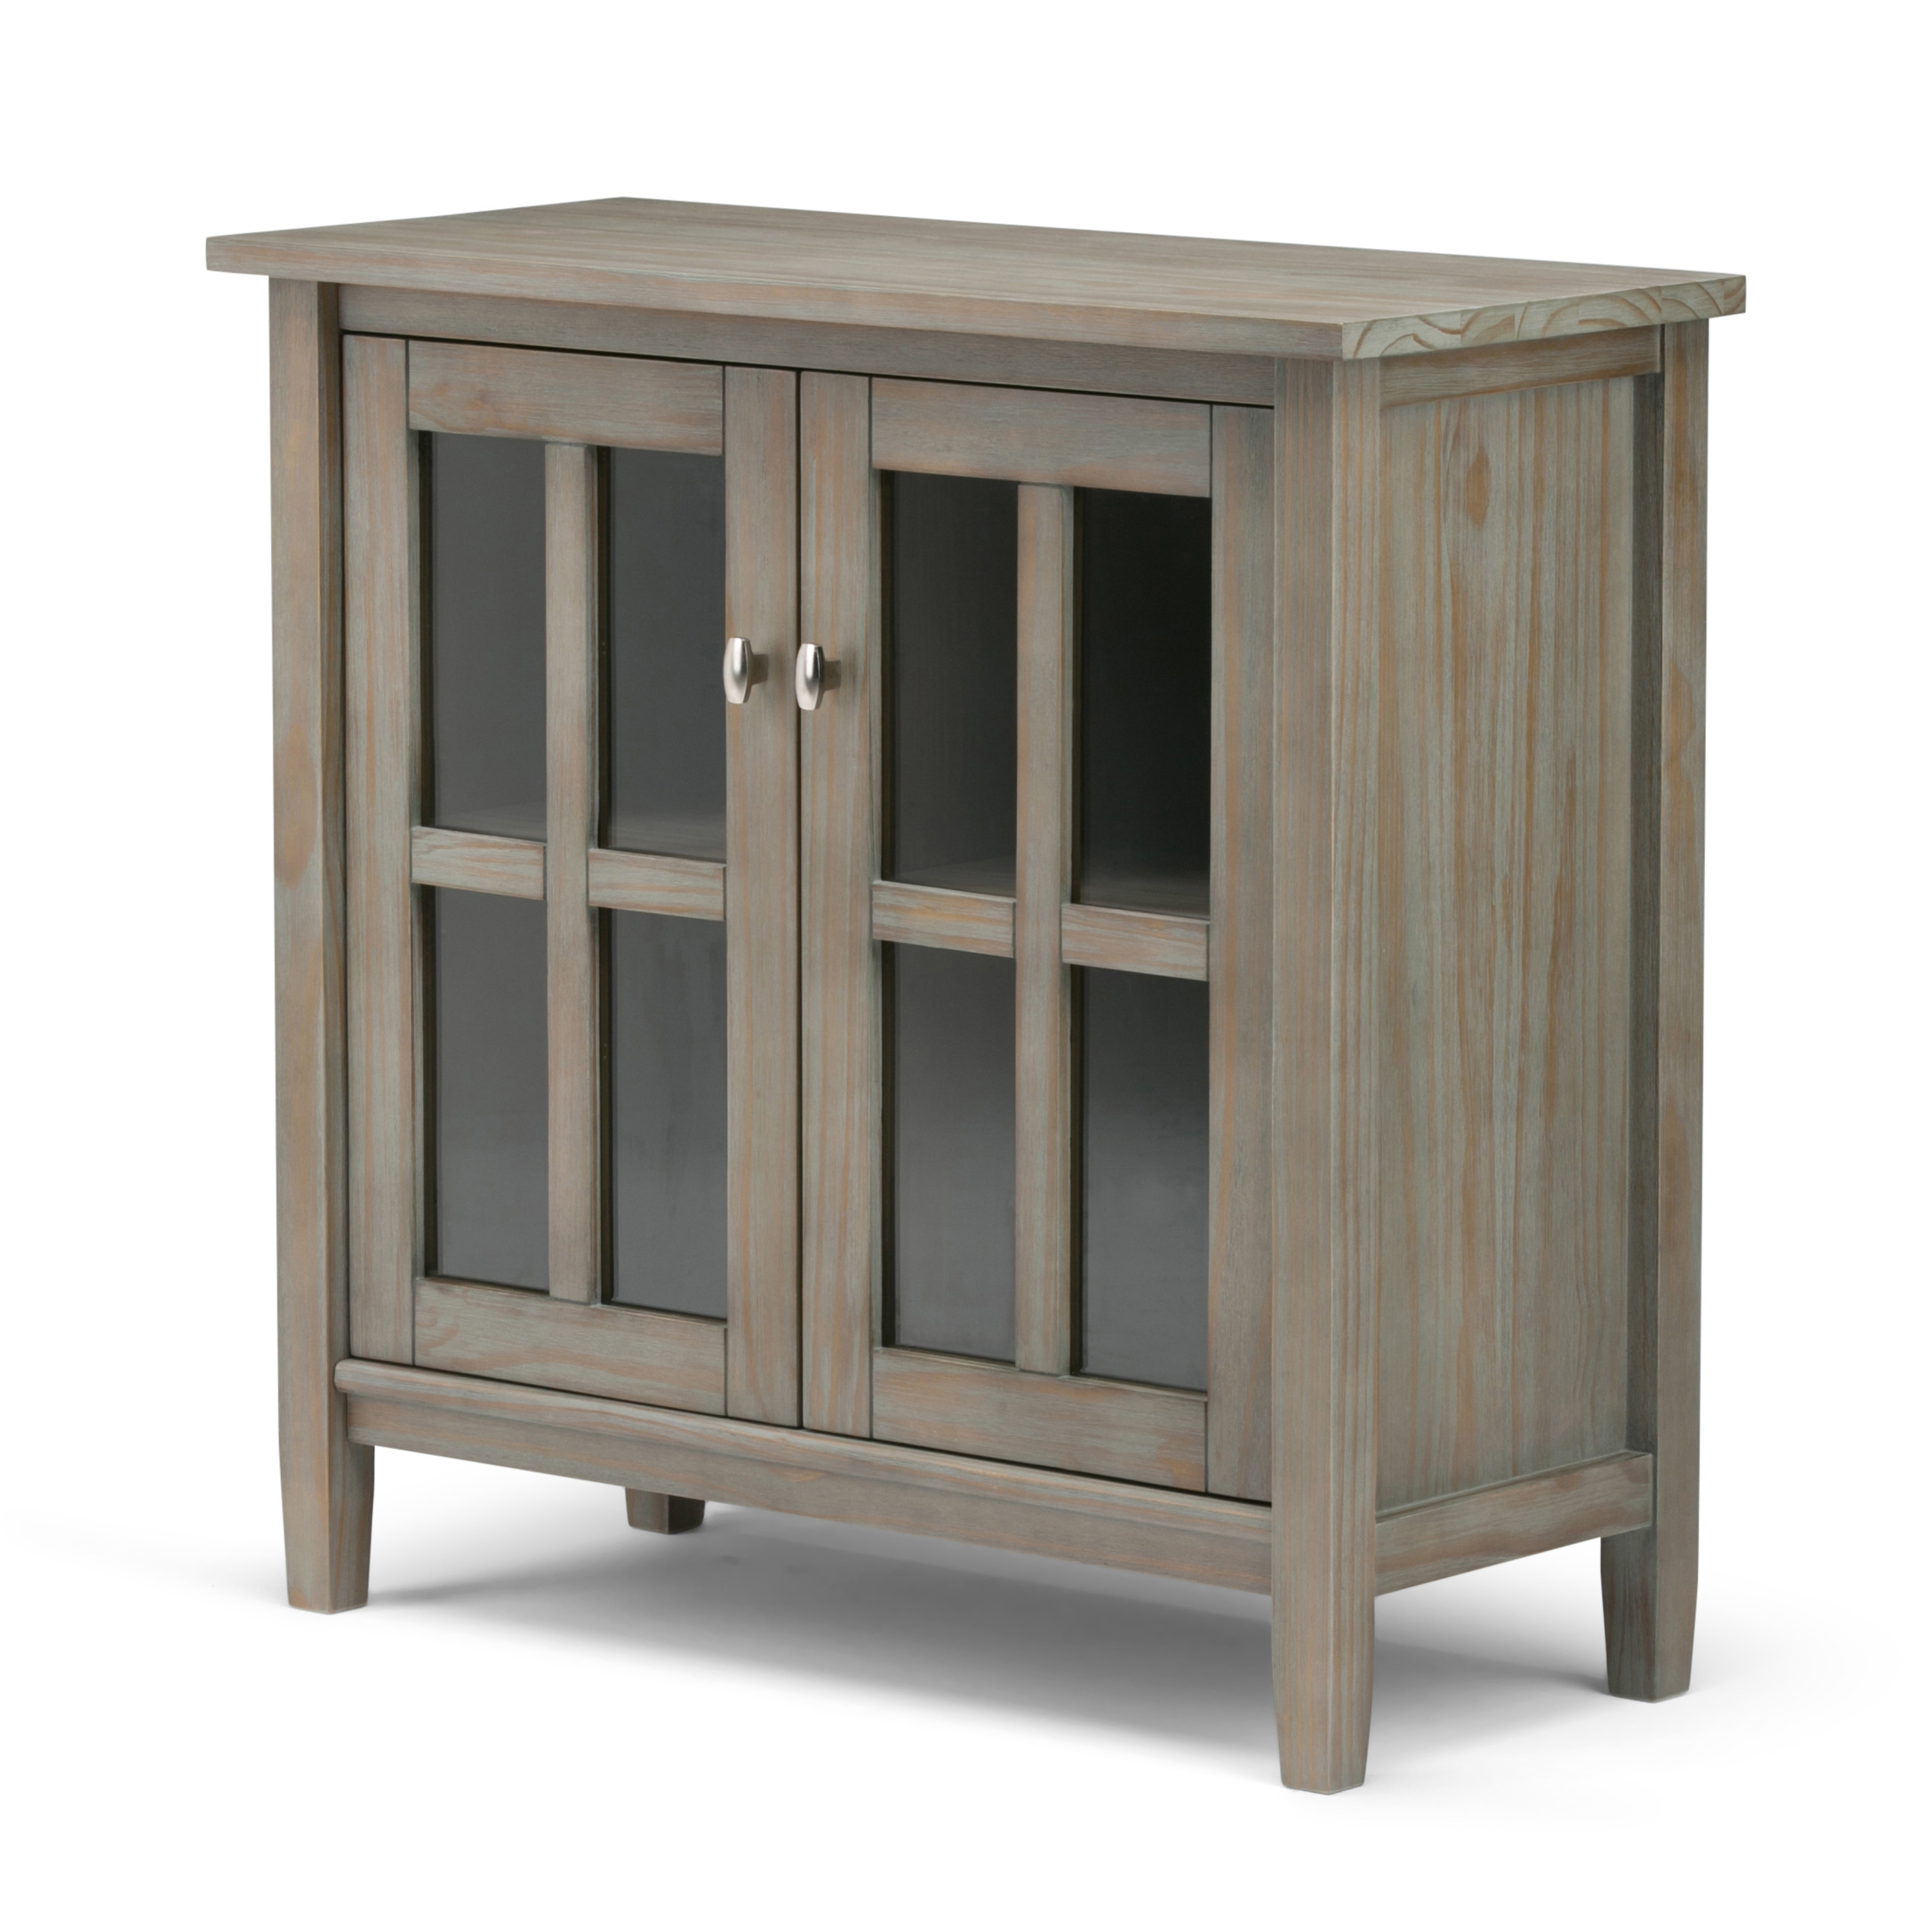 Brooklyn Max Lexington Solid Wood 32 Inch Wide Rustic Low Storage Cabinet In Distressed Grey Walmart Com Walmart Com